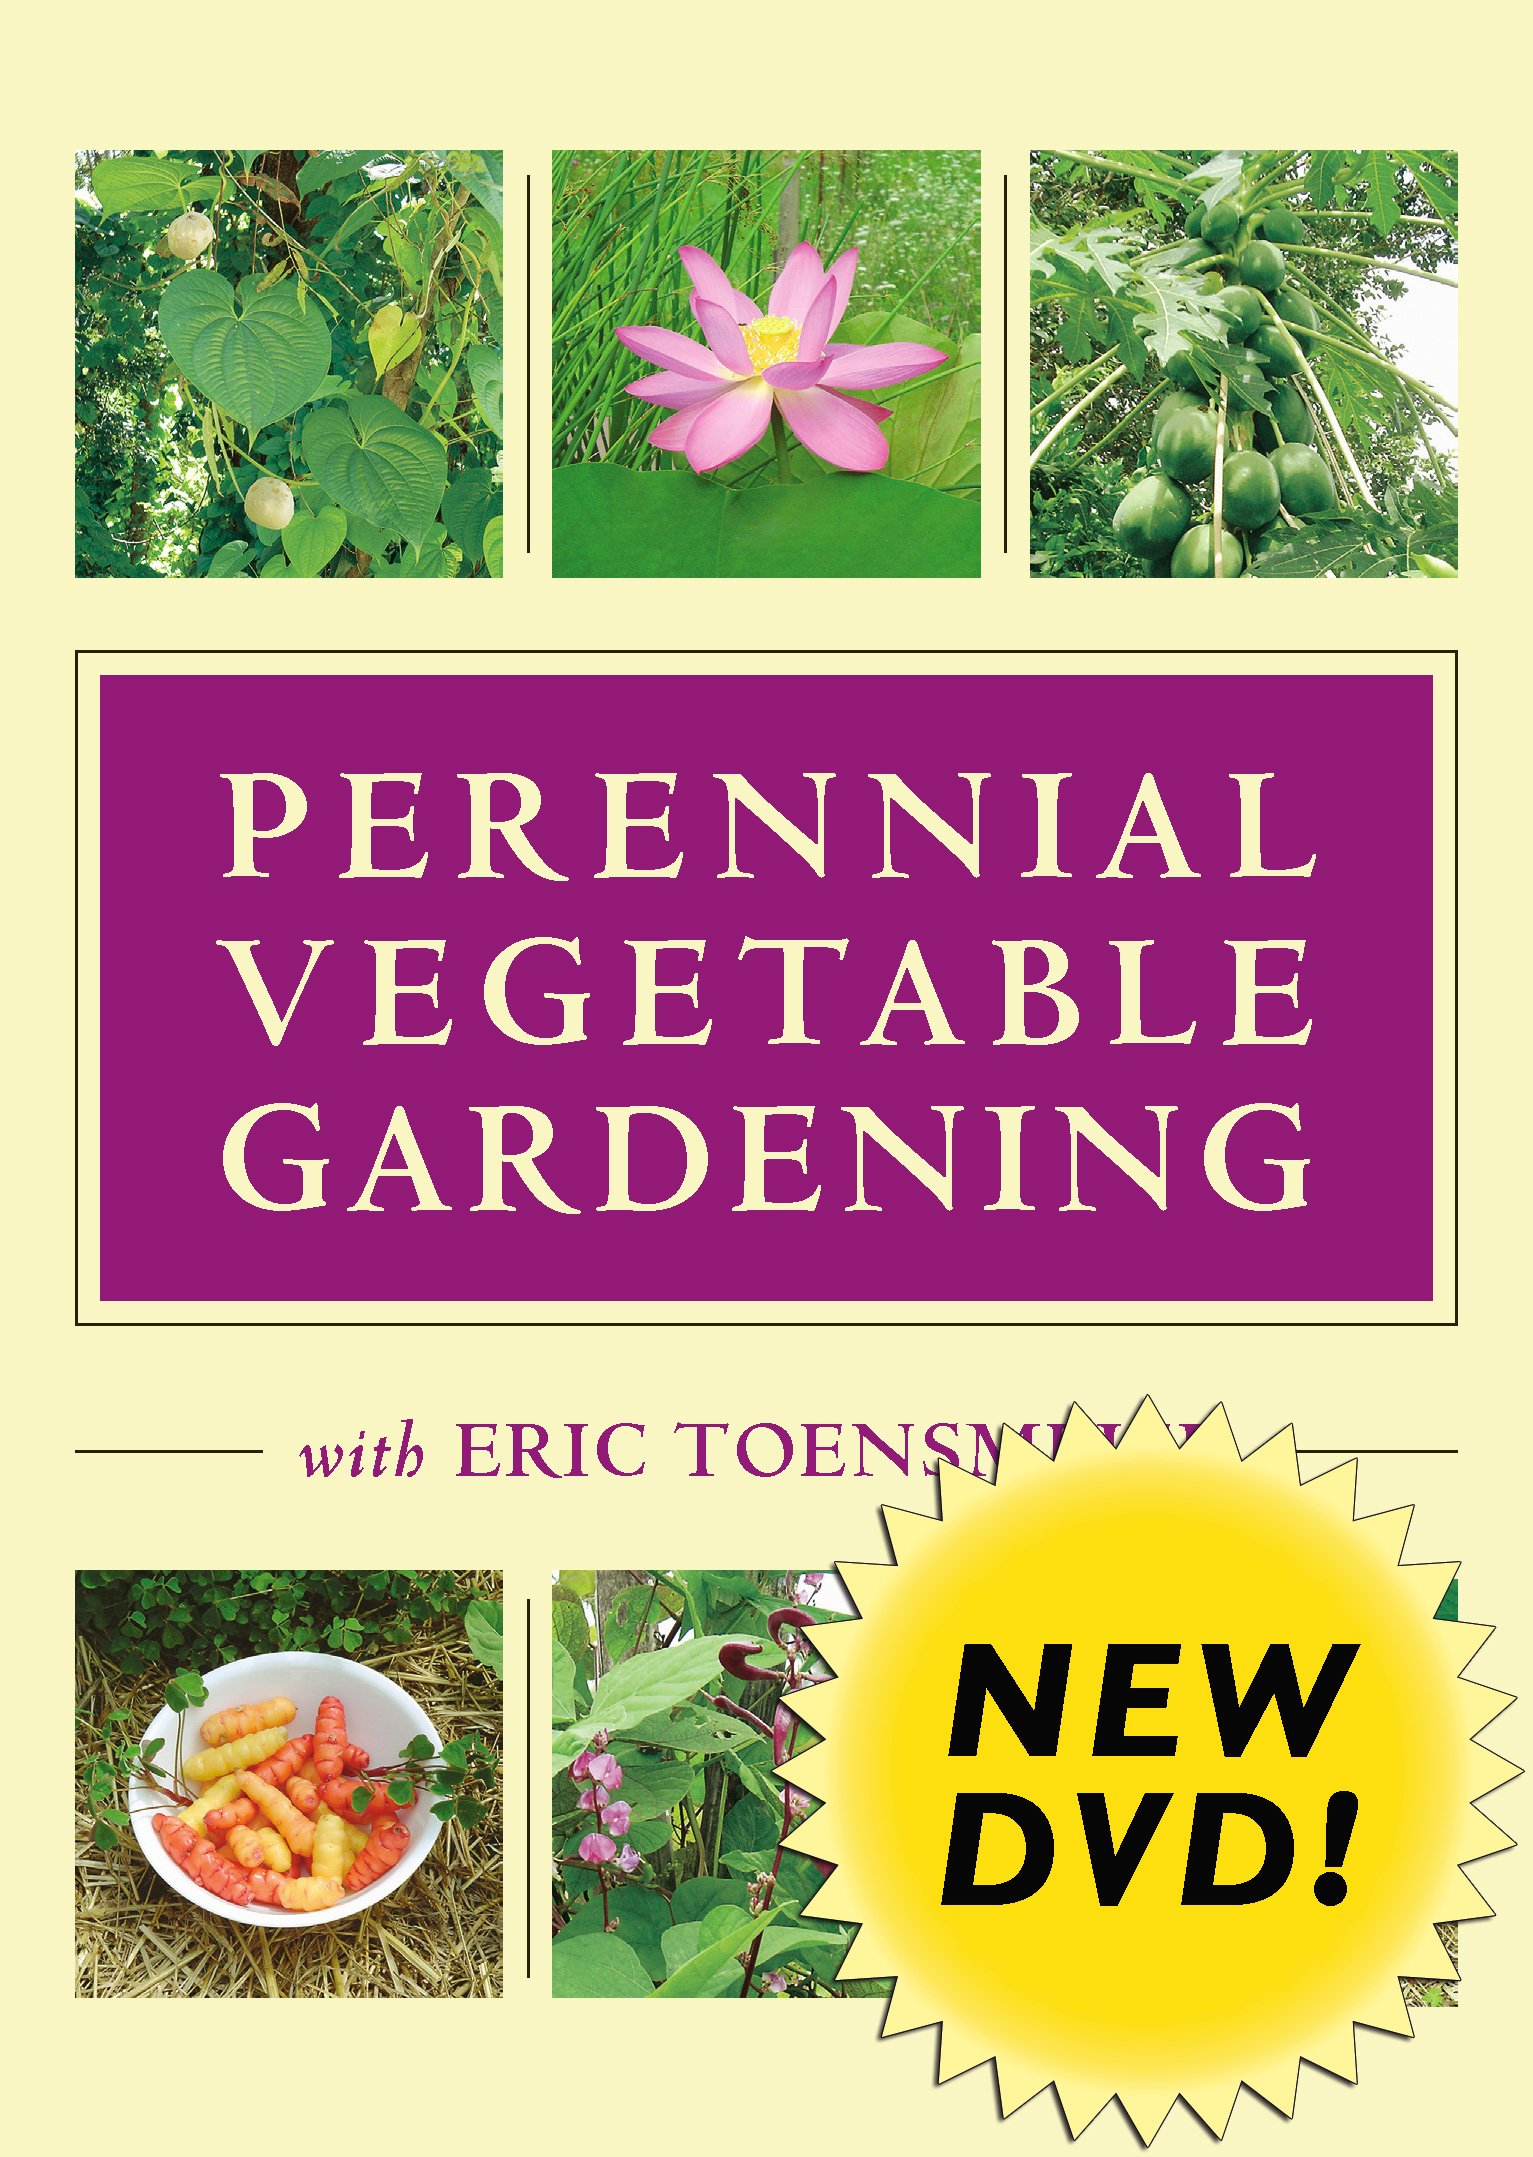 Perennial Vegetable Gardening DVD Cover